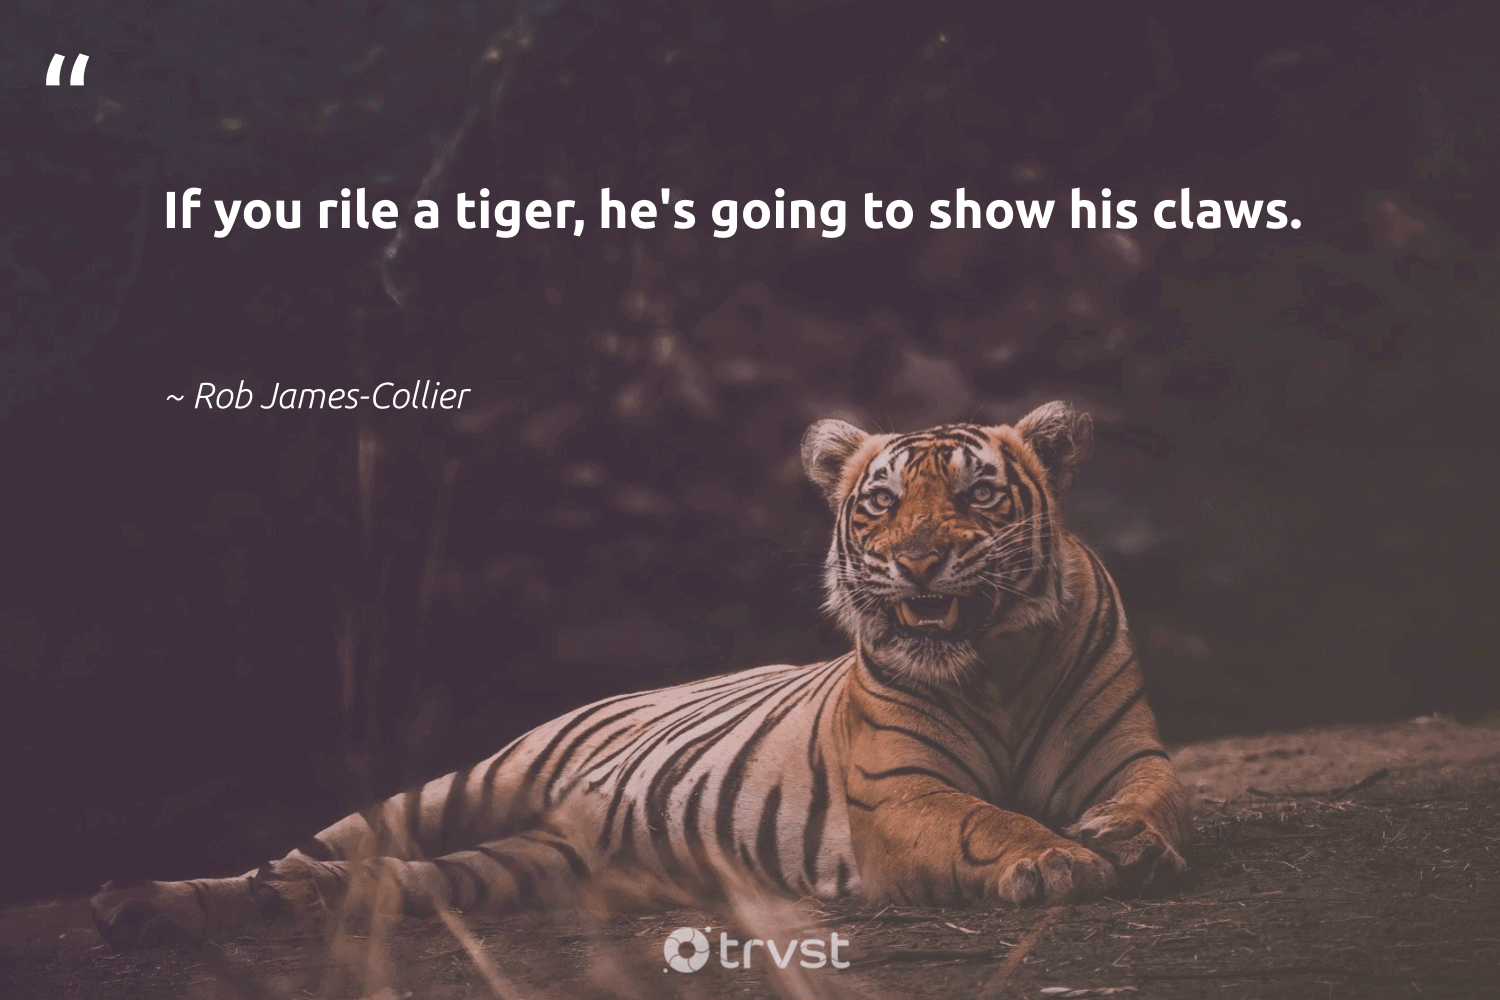 """If you rile a tiger, he's going to show his claws.""  - Rob James-Collier #trvst #quotes #tiger #amazingworld #bethechange #animalphotography #impact #wildlifeprotection #planetearthfirst #sustainability #socialchange #perfectnature"